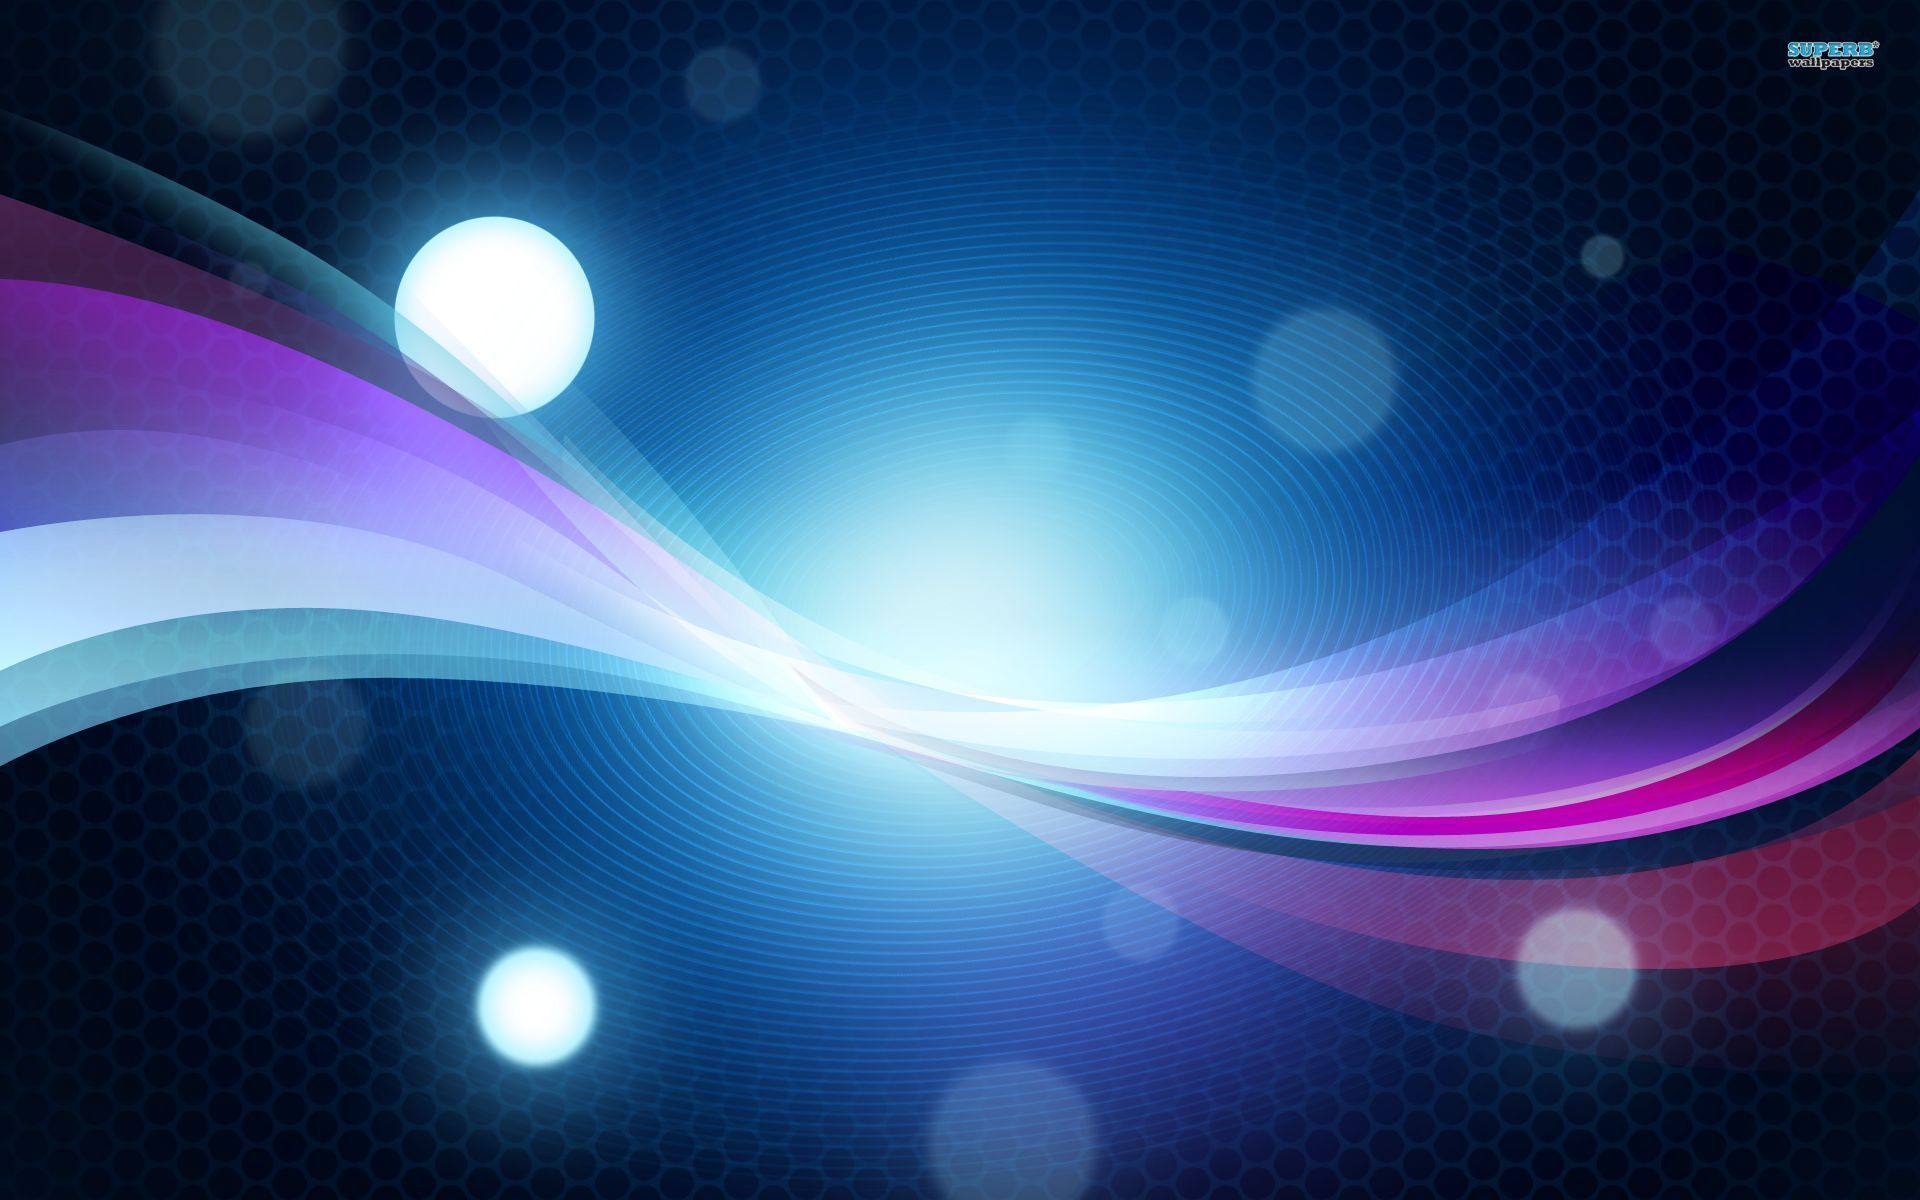 Strobe Lights Effect Free PPT Backgrounds For Your PowerPoint